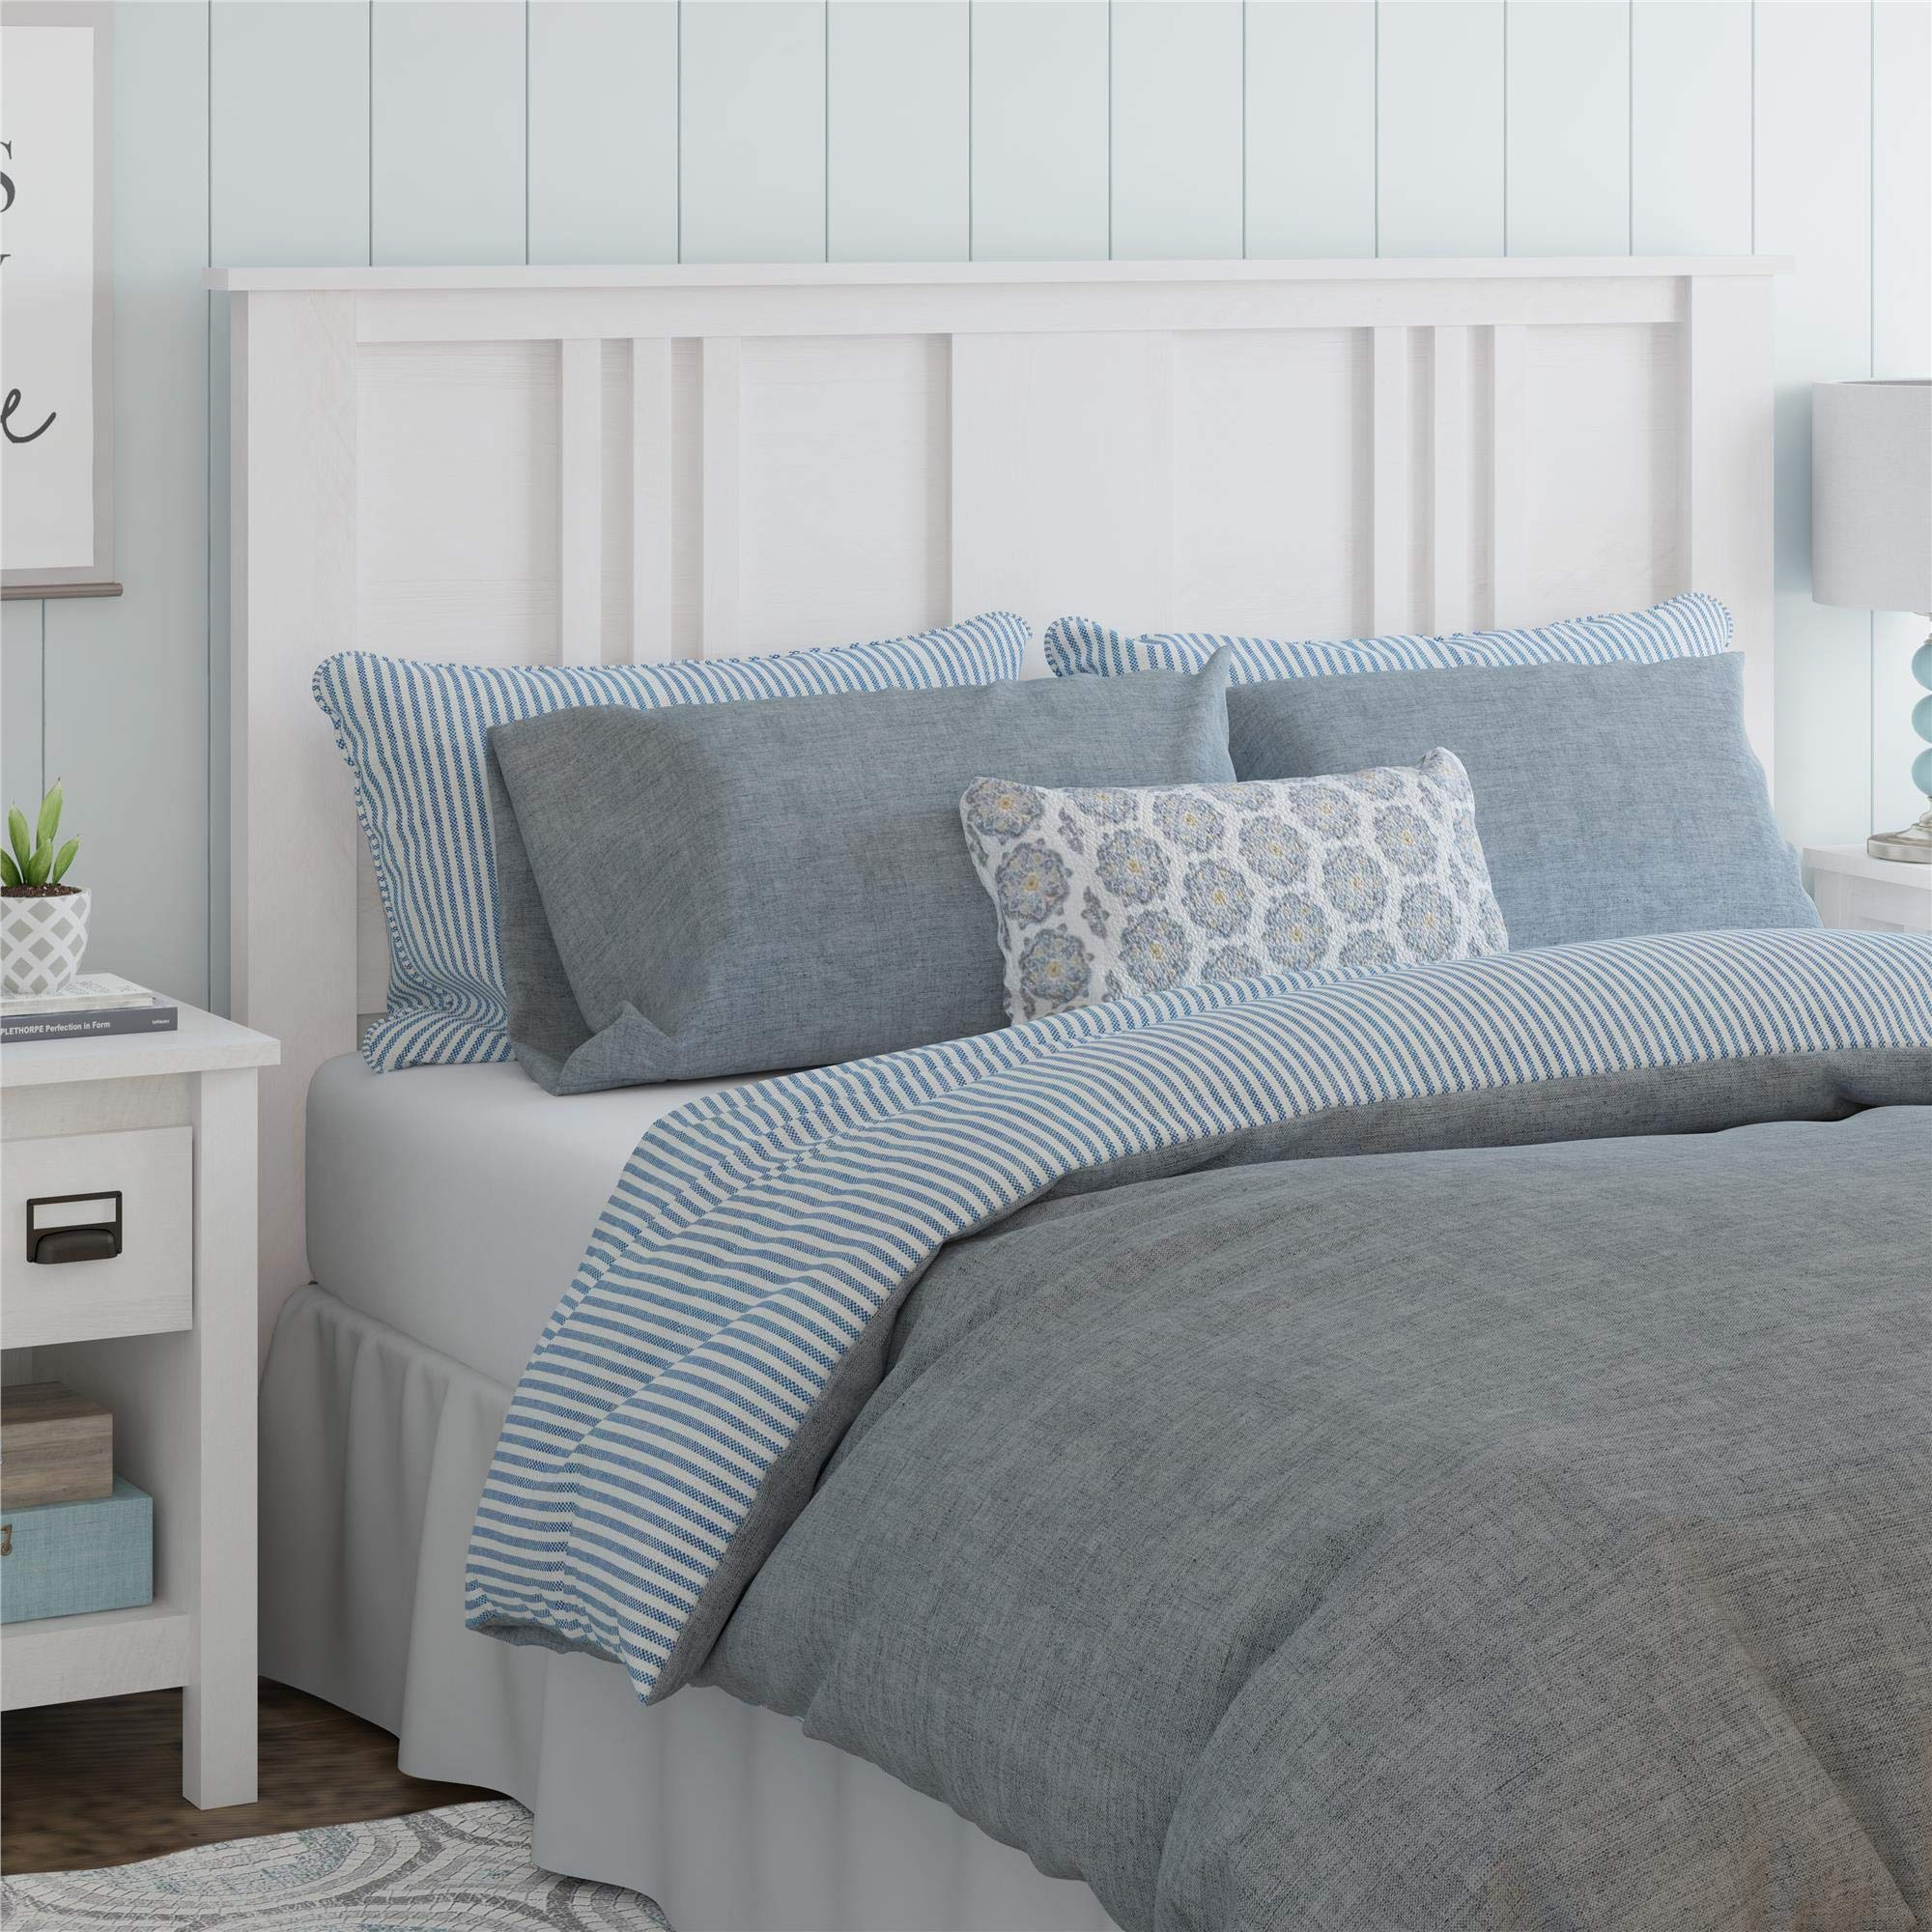 Ameriwood Home Adams Queen Headboard, Ivory Oak by Ameriwood Home